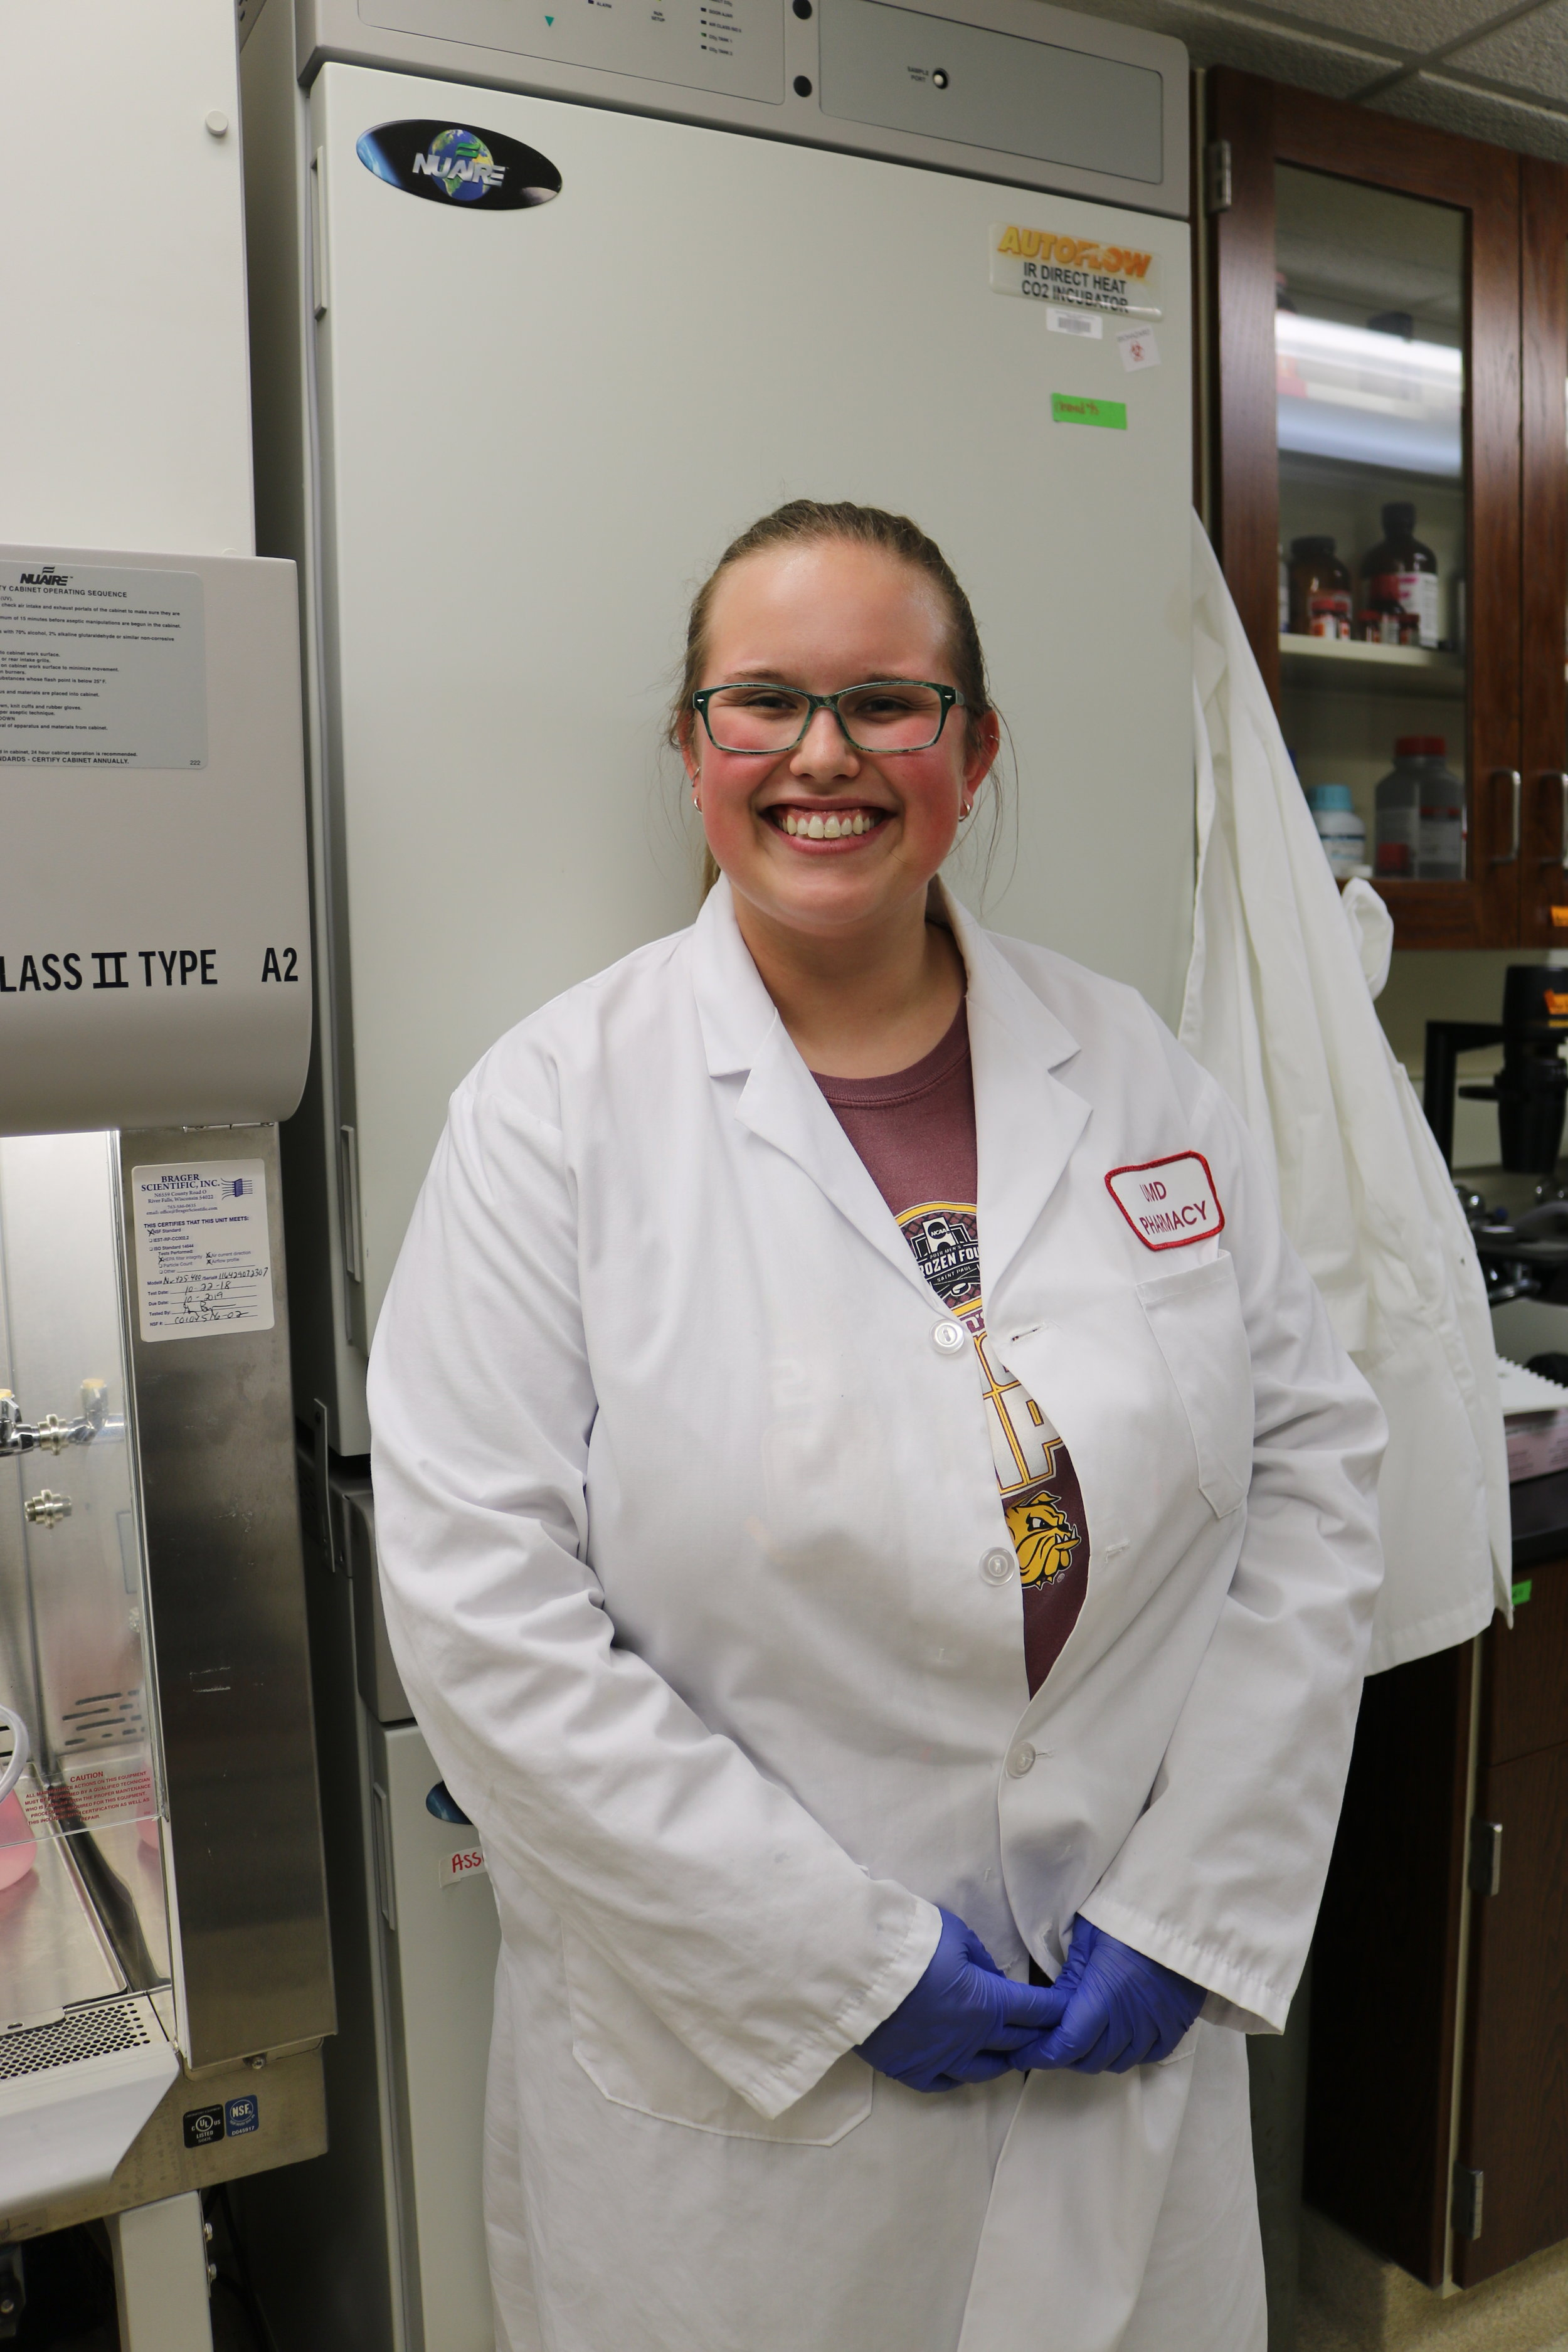 Kaija Kottke in the lab on Nov. 12, 2018. Kottke has been working in the lab for three years. Photo by Brianna Taggart